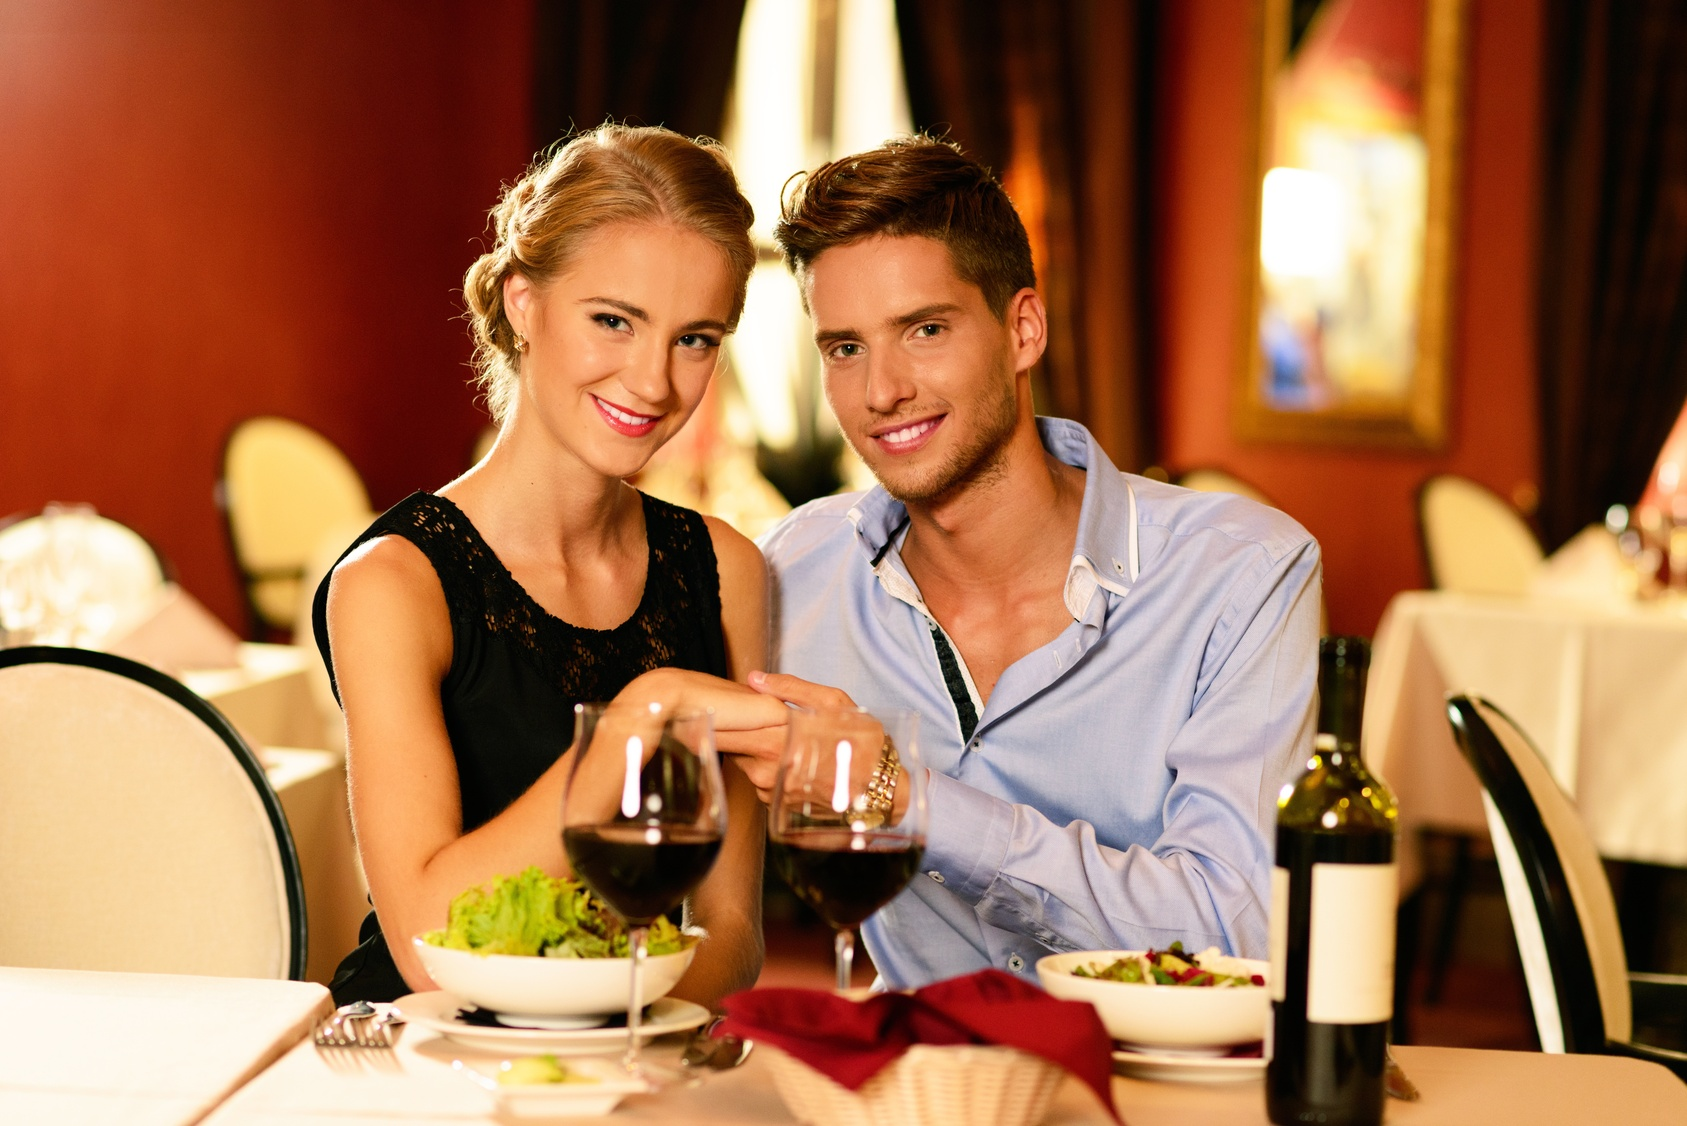 Factors To Choose The Best Restaurant For Dating Vhs Story